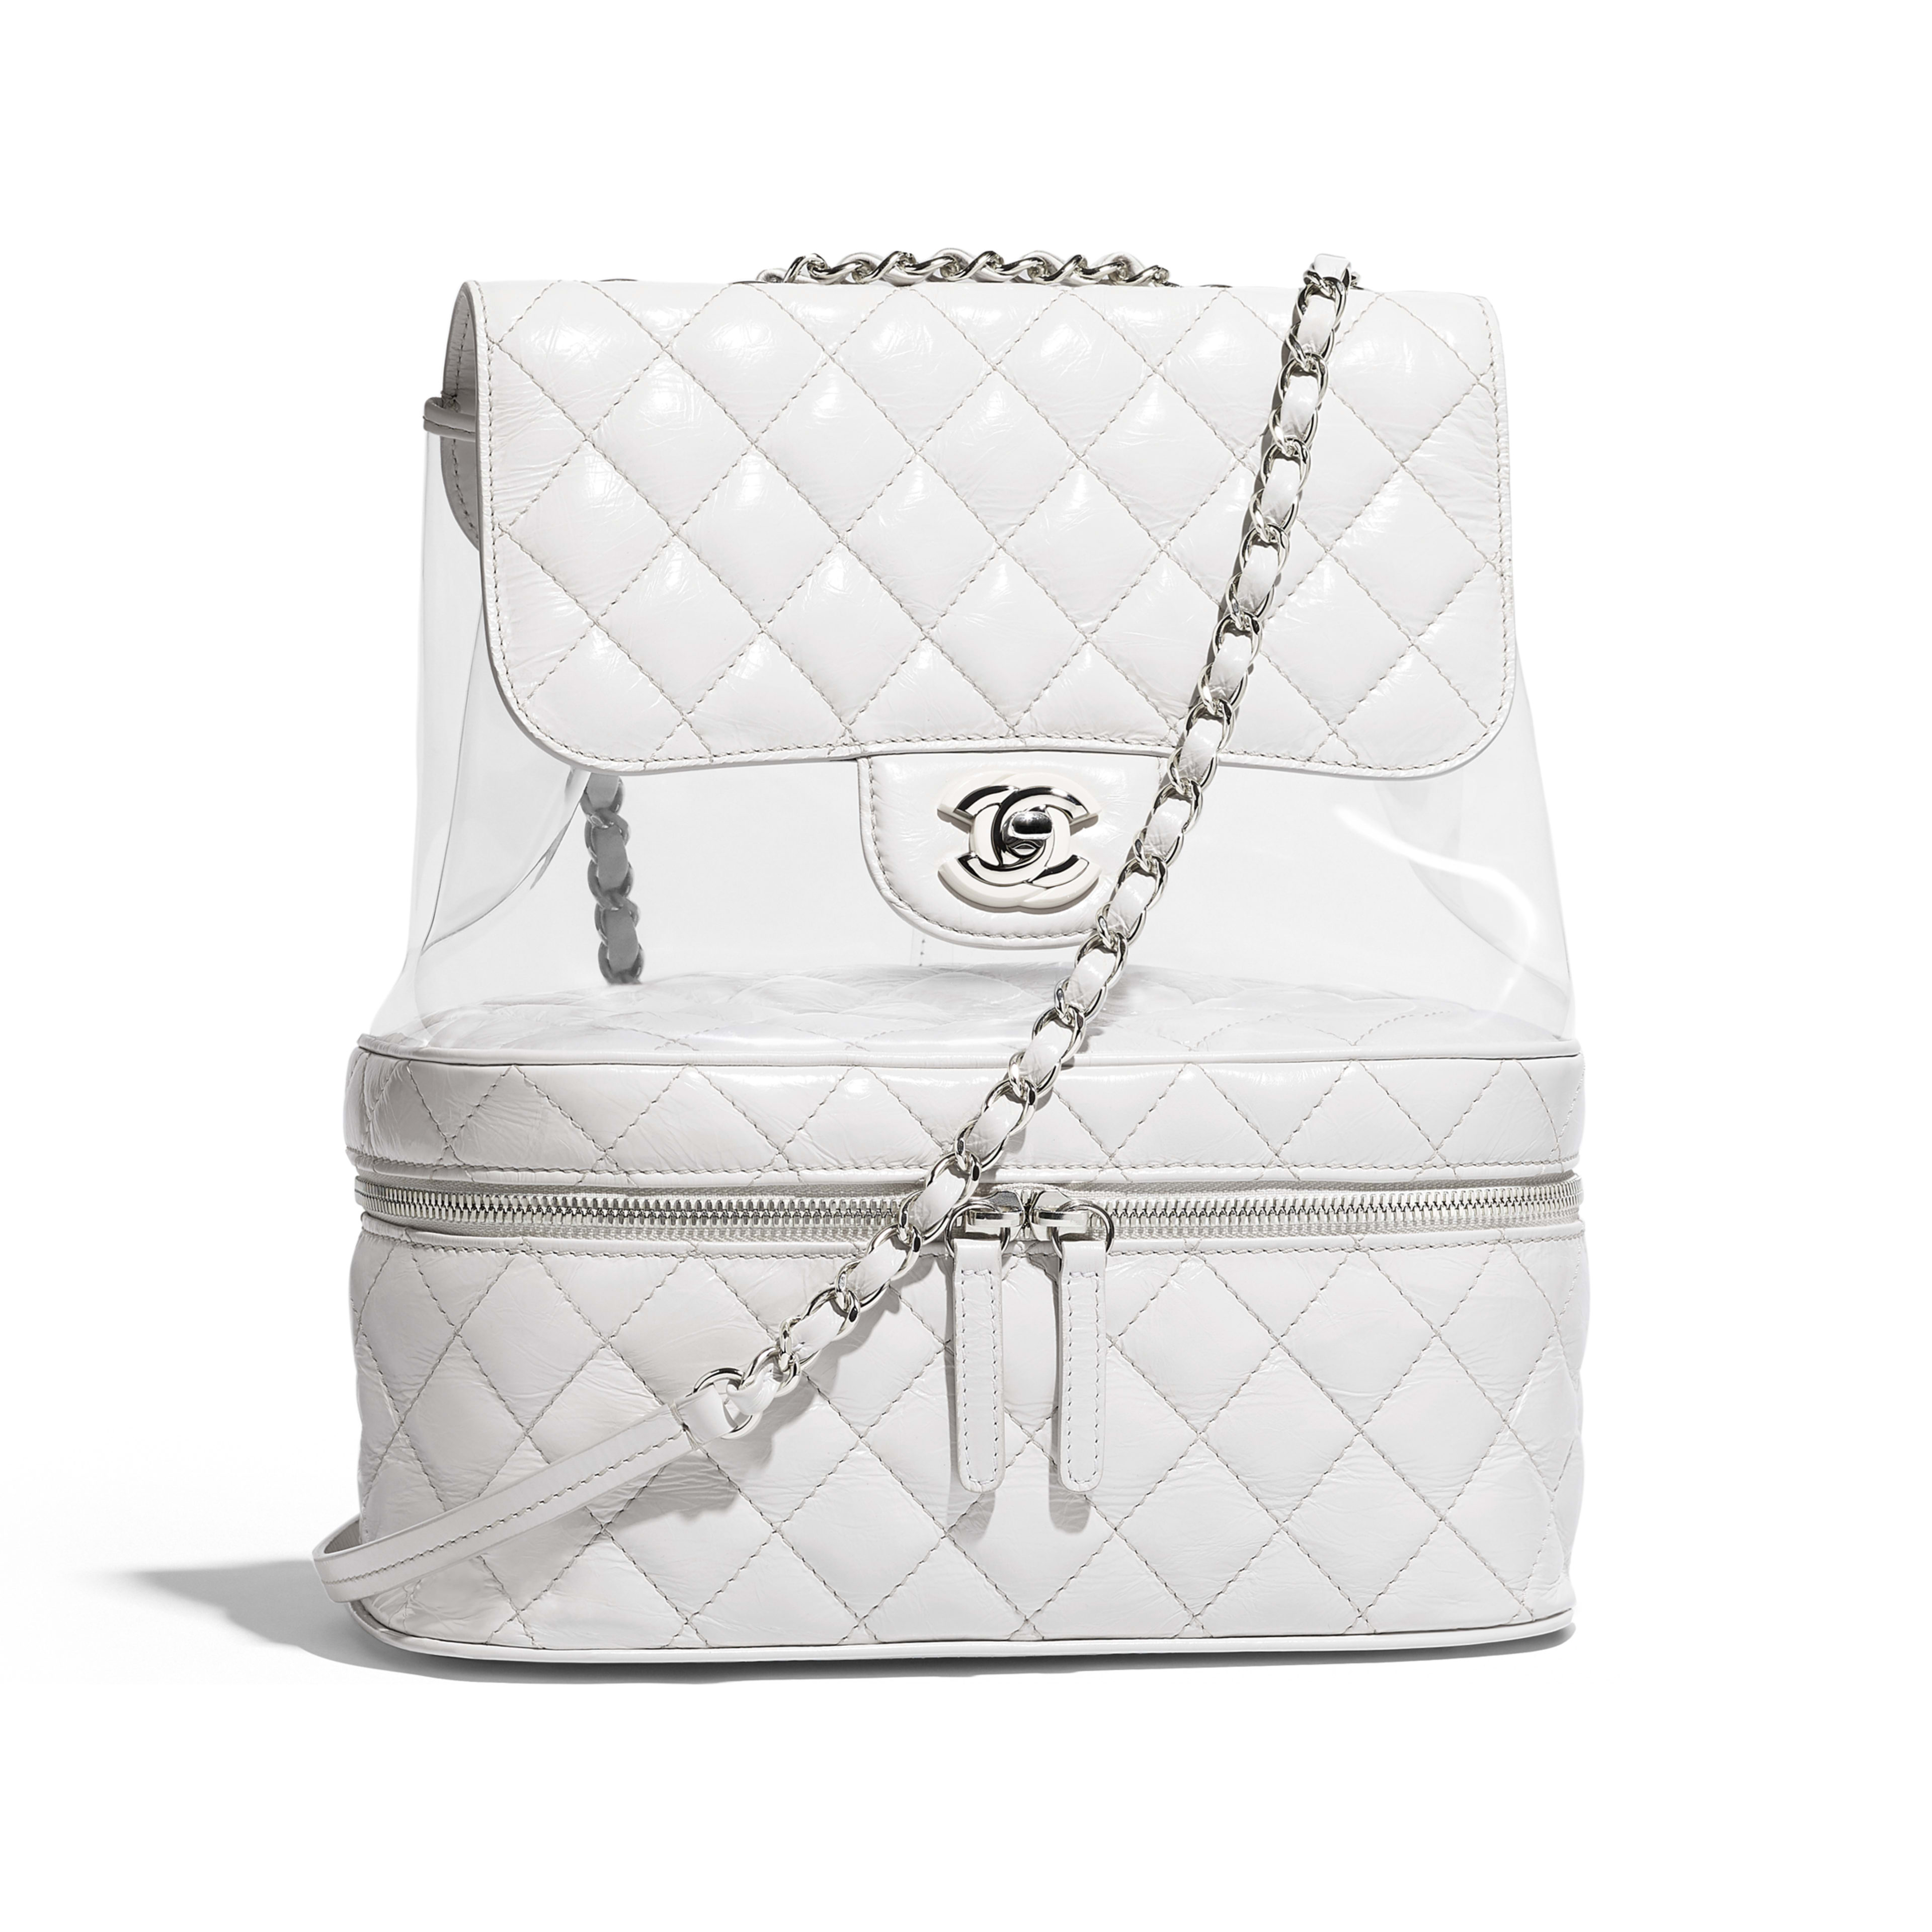 Flap Bag Crumpled Calfskin, PVC, Resin & Silver-Tone Metal White -                                  view 1 - see full sized version